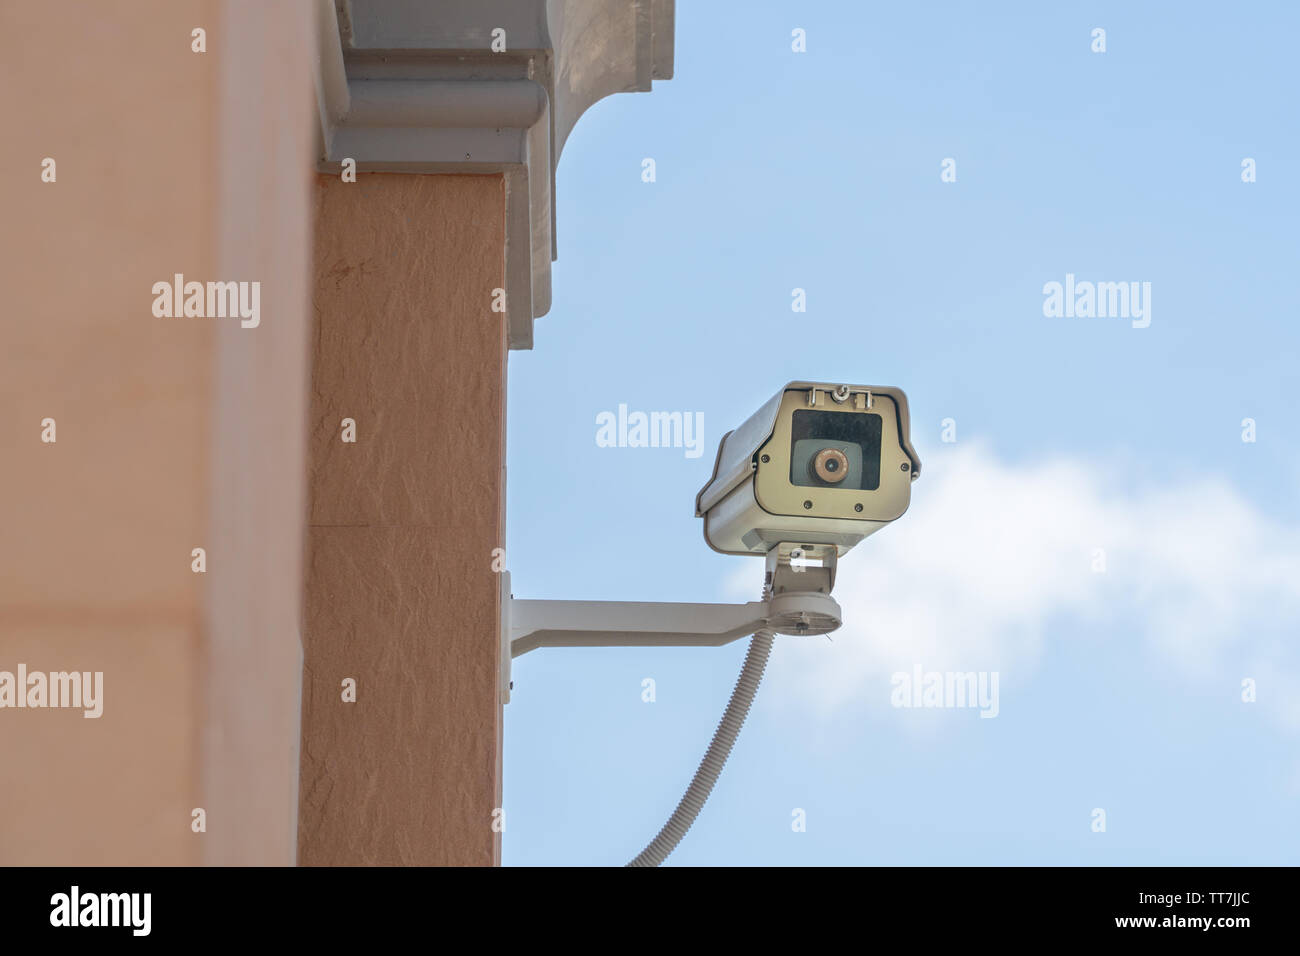 cctv security camera or home surveillance cameras video protection safety system guard - Stock Image